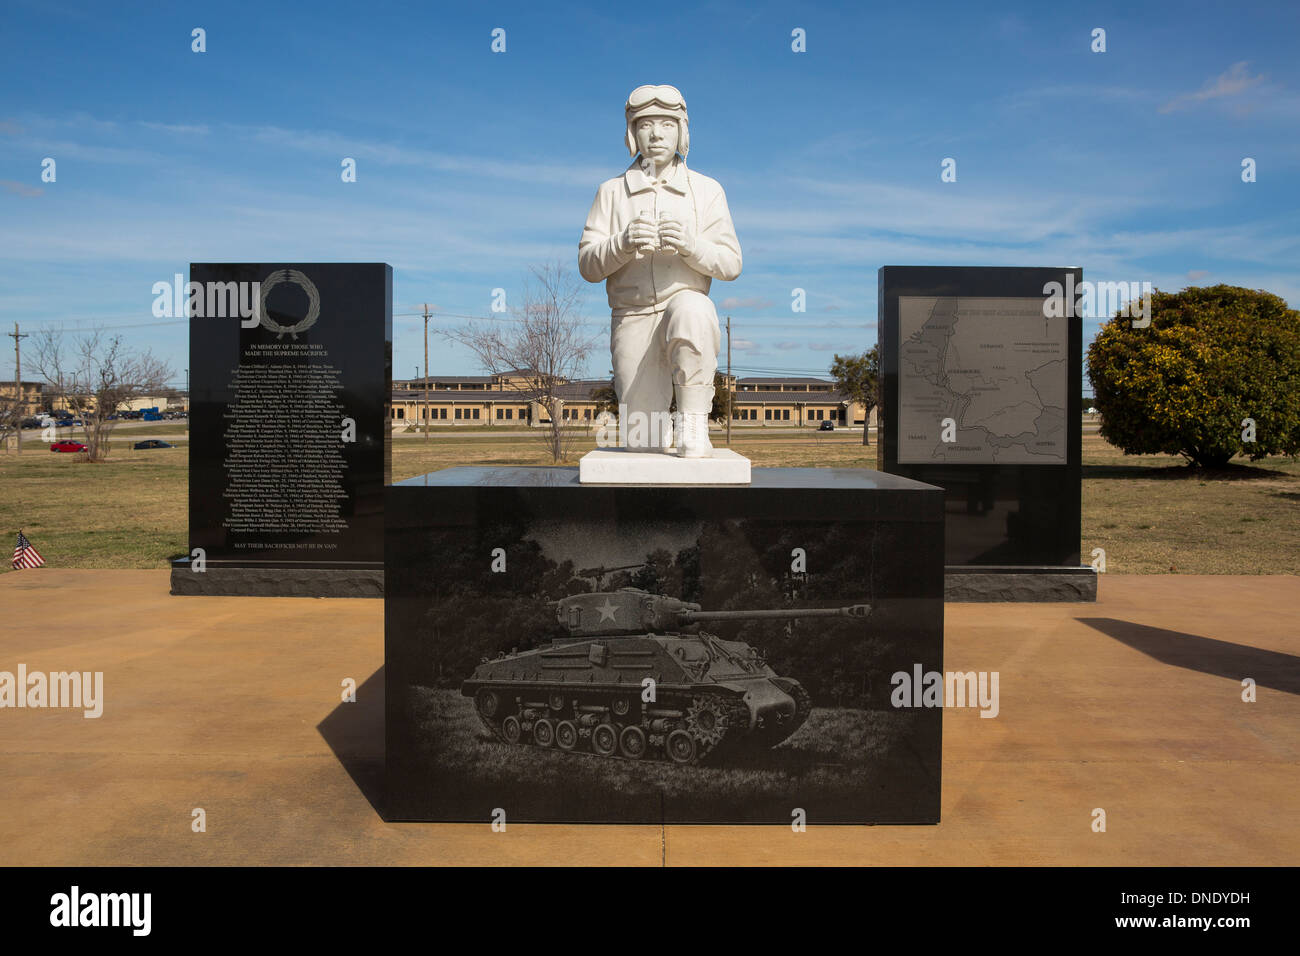 1st Cavalry Division Museum, Ft Hood, Texas - Stock Image